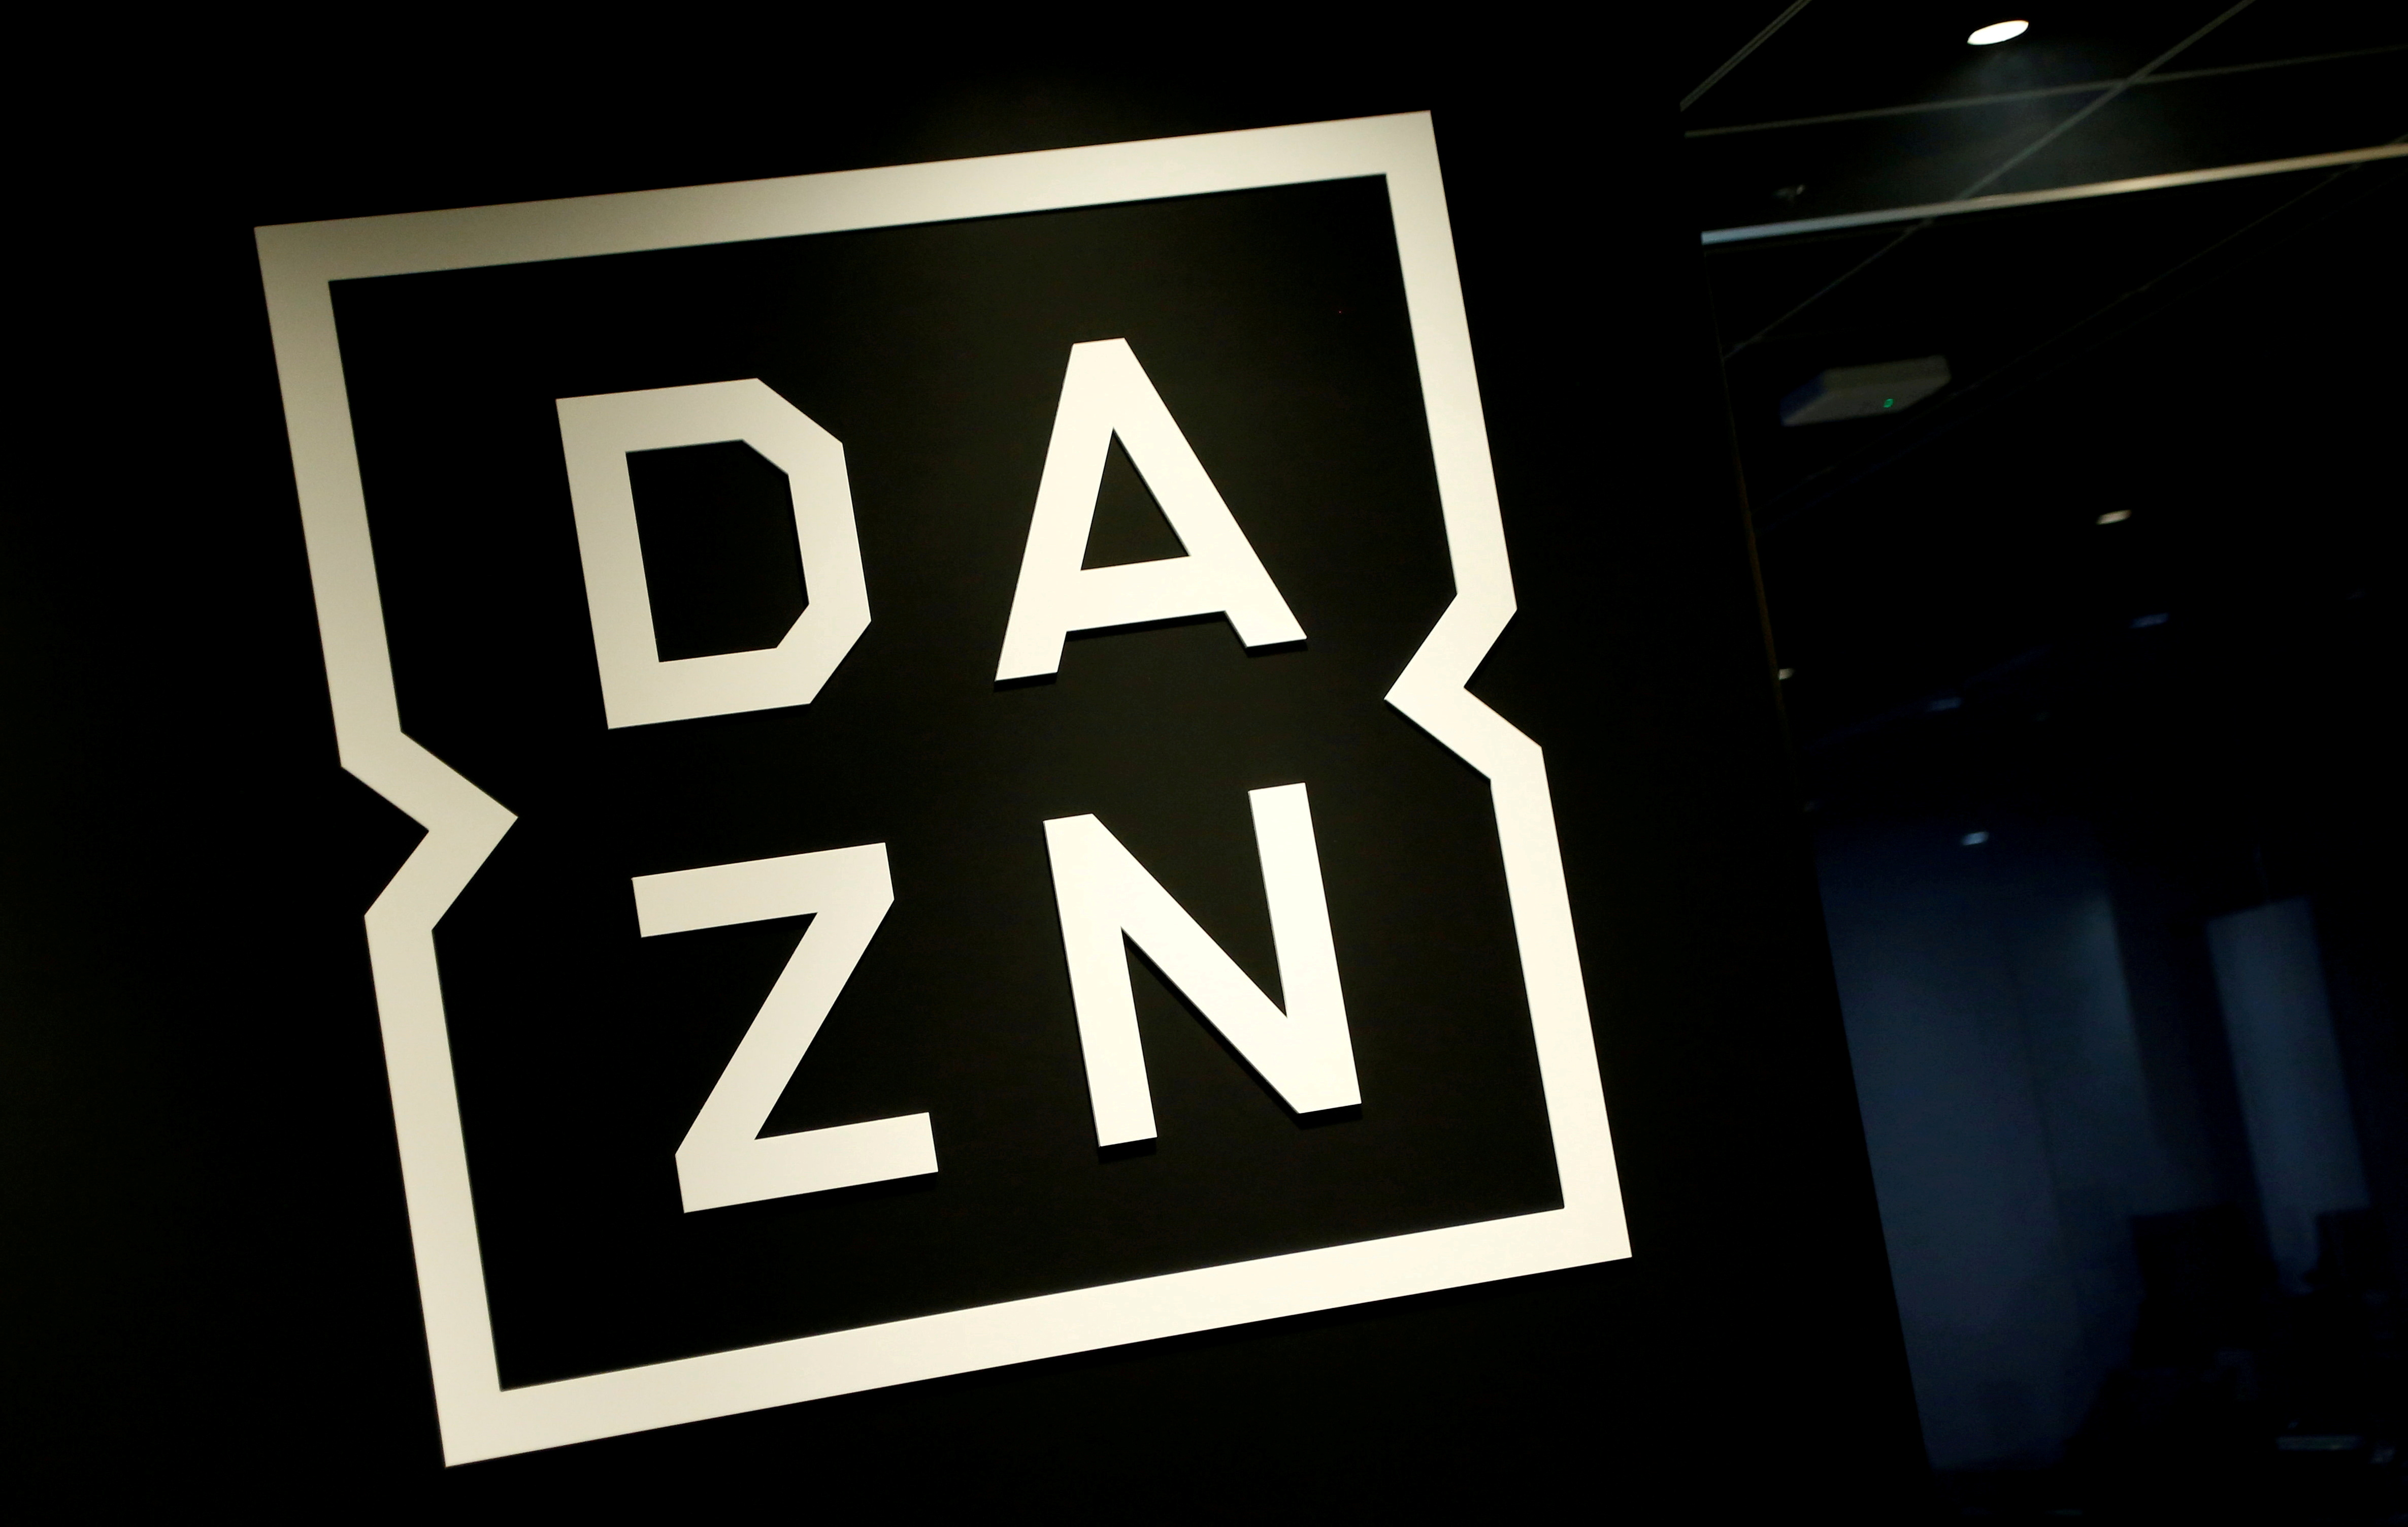 Internet streaming service DAZN's logo is pictured in its office in Tokyo, Japan March 21, 2017. Picture taken on March 21, 2017. REUTERS/Kim Kyung-Hoon